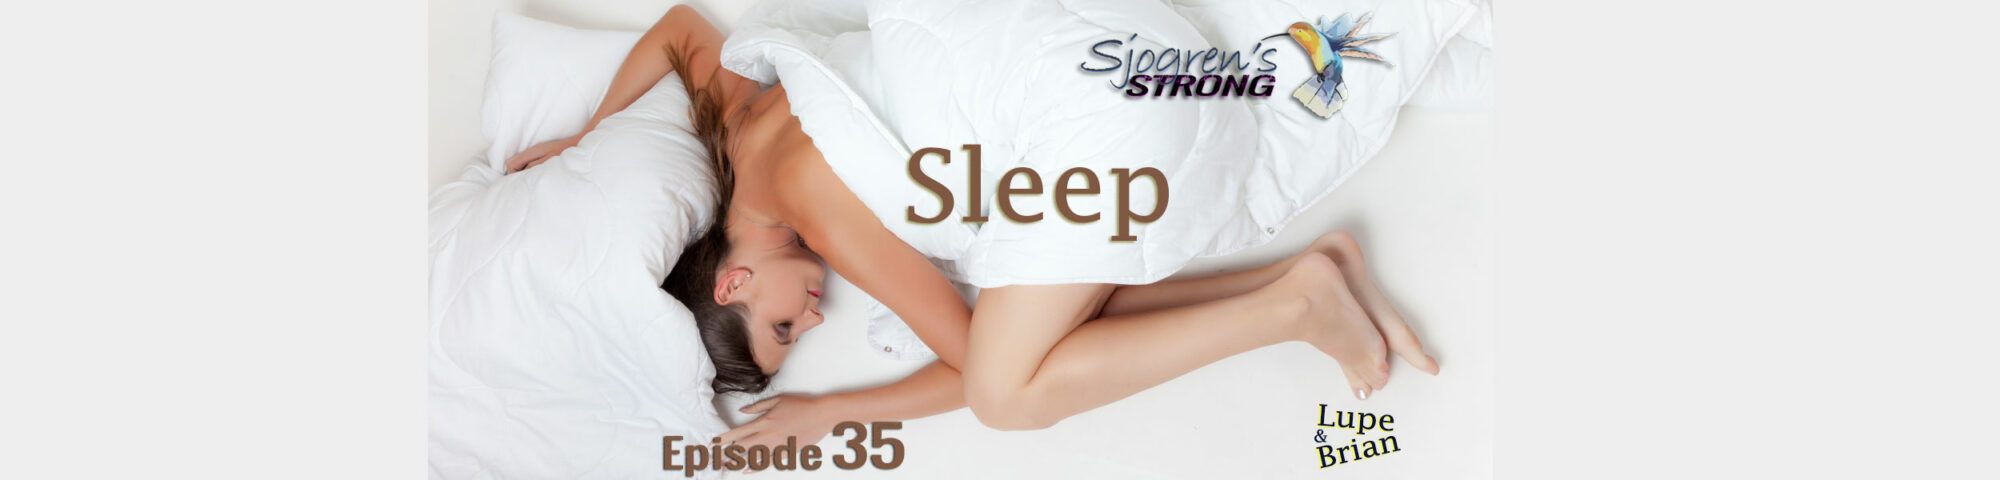 Sleep, Episode 35, Sjogren's Strong